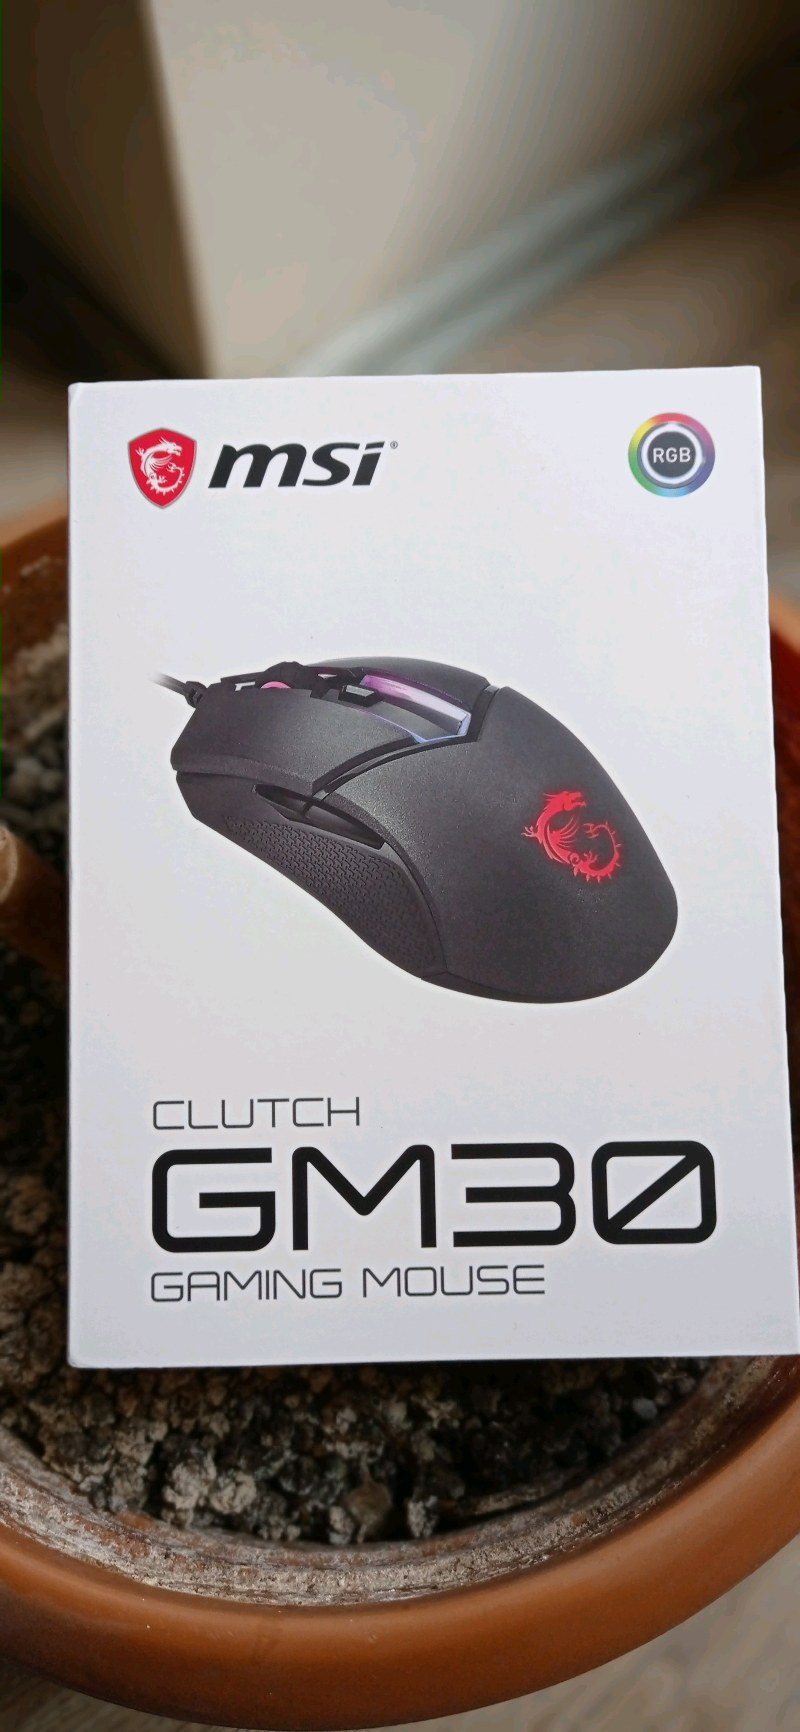 MSI CLUTCH GM 30 GAMİNG MOUSE